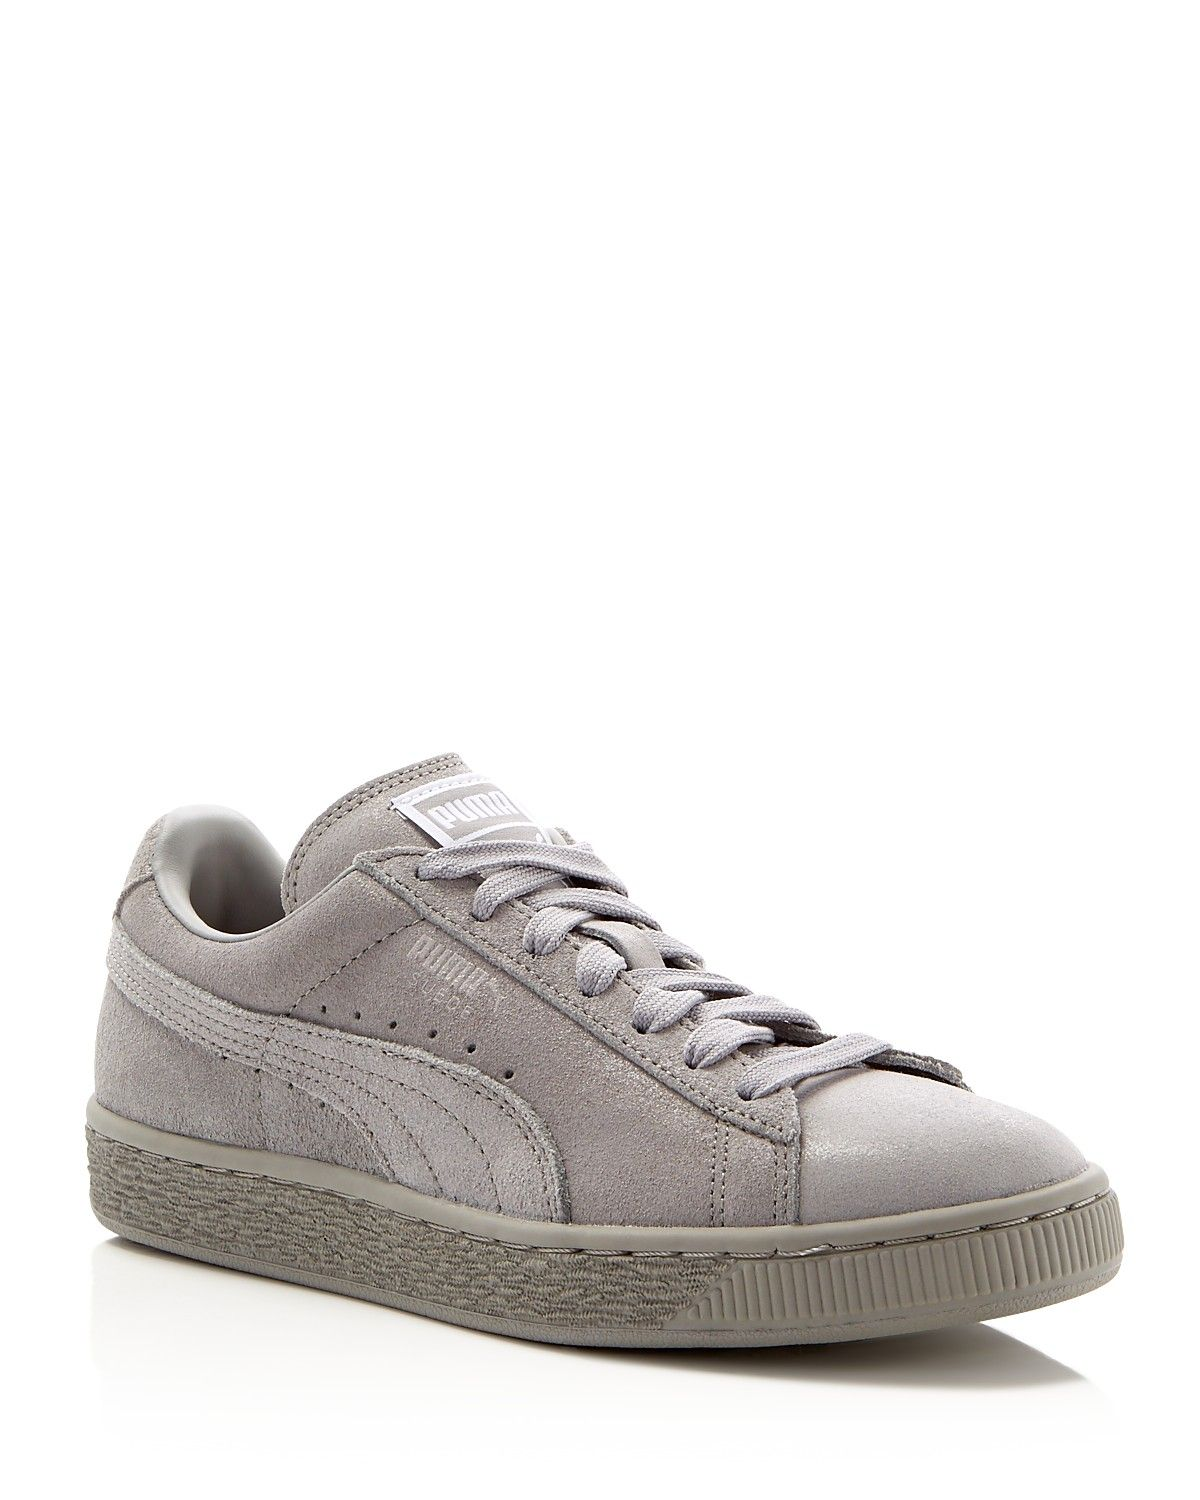 PUMA Women's Suede Classic Matte & Shine Lace Up Sneakers | Bloomingdale's